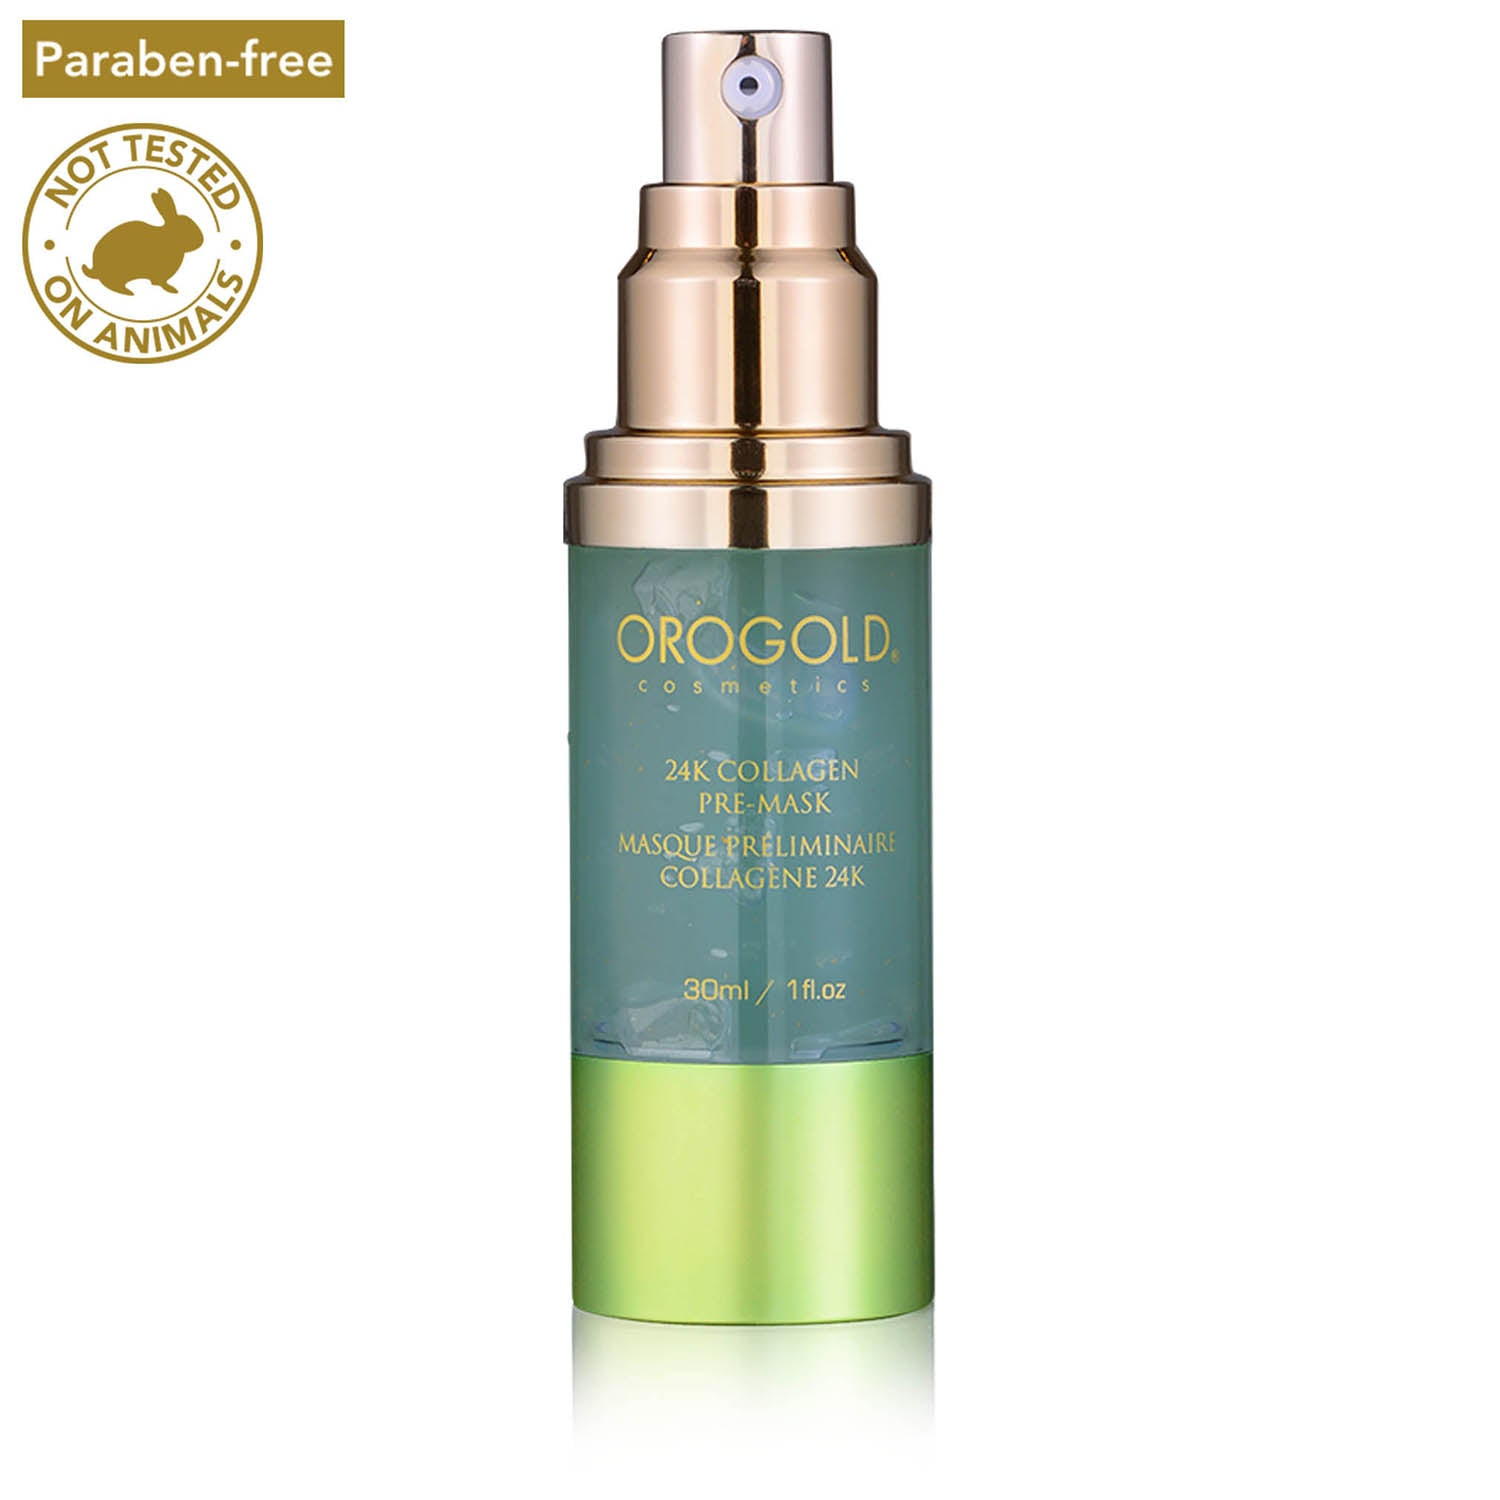 orogold foaming facial cleanser